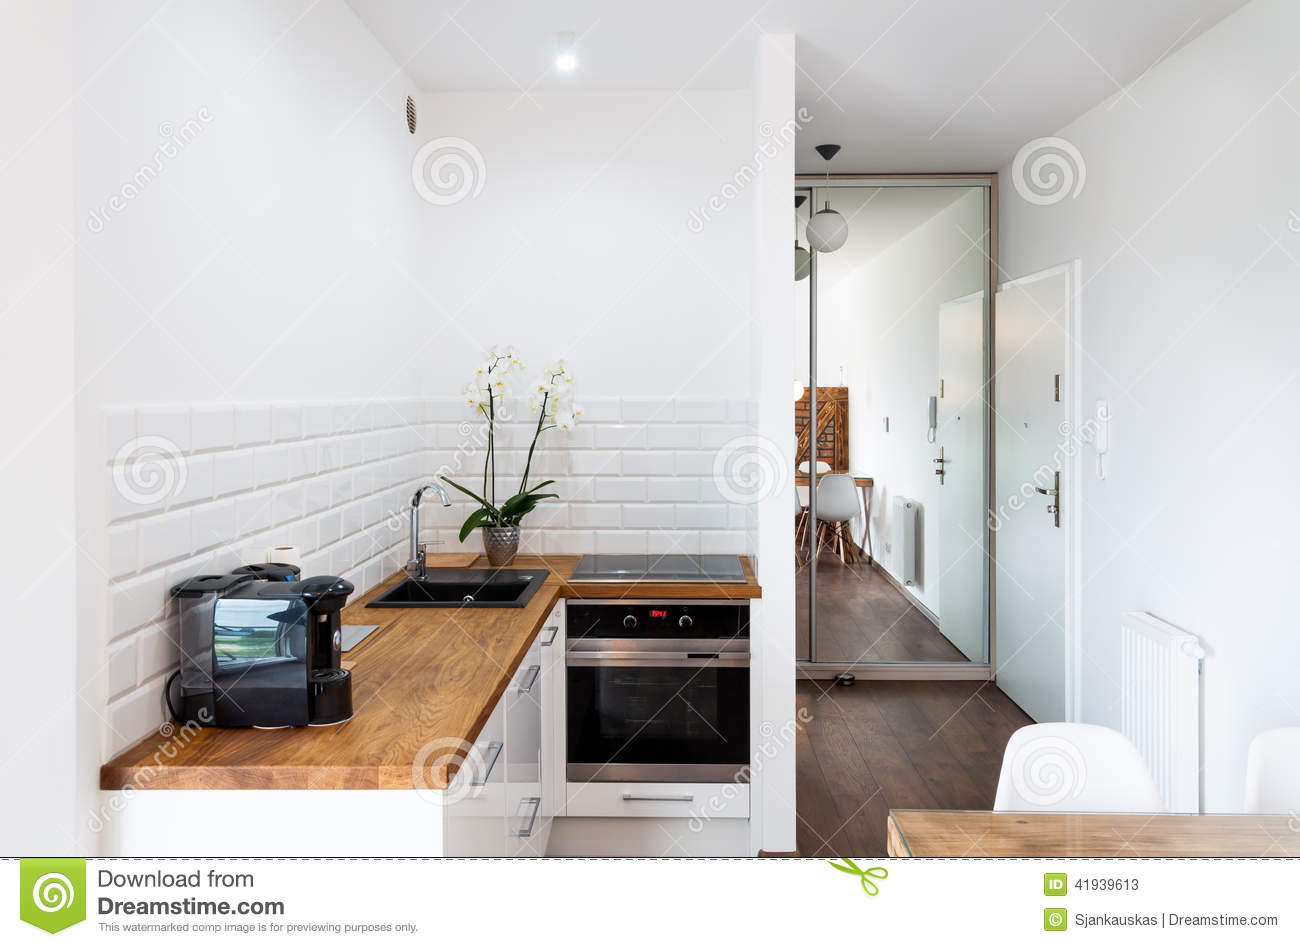 kitchen area in hotel apartment stock photo - image: 41939613